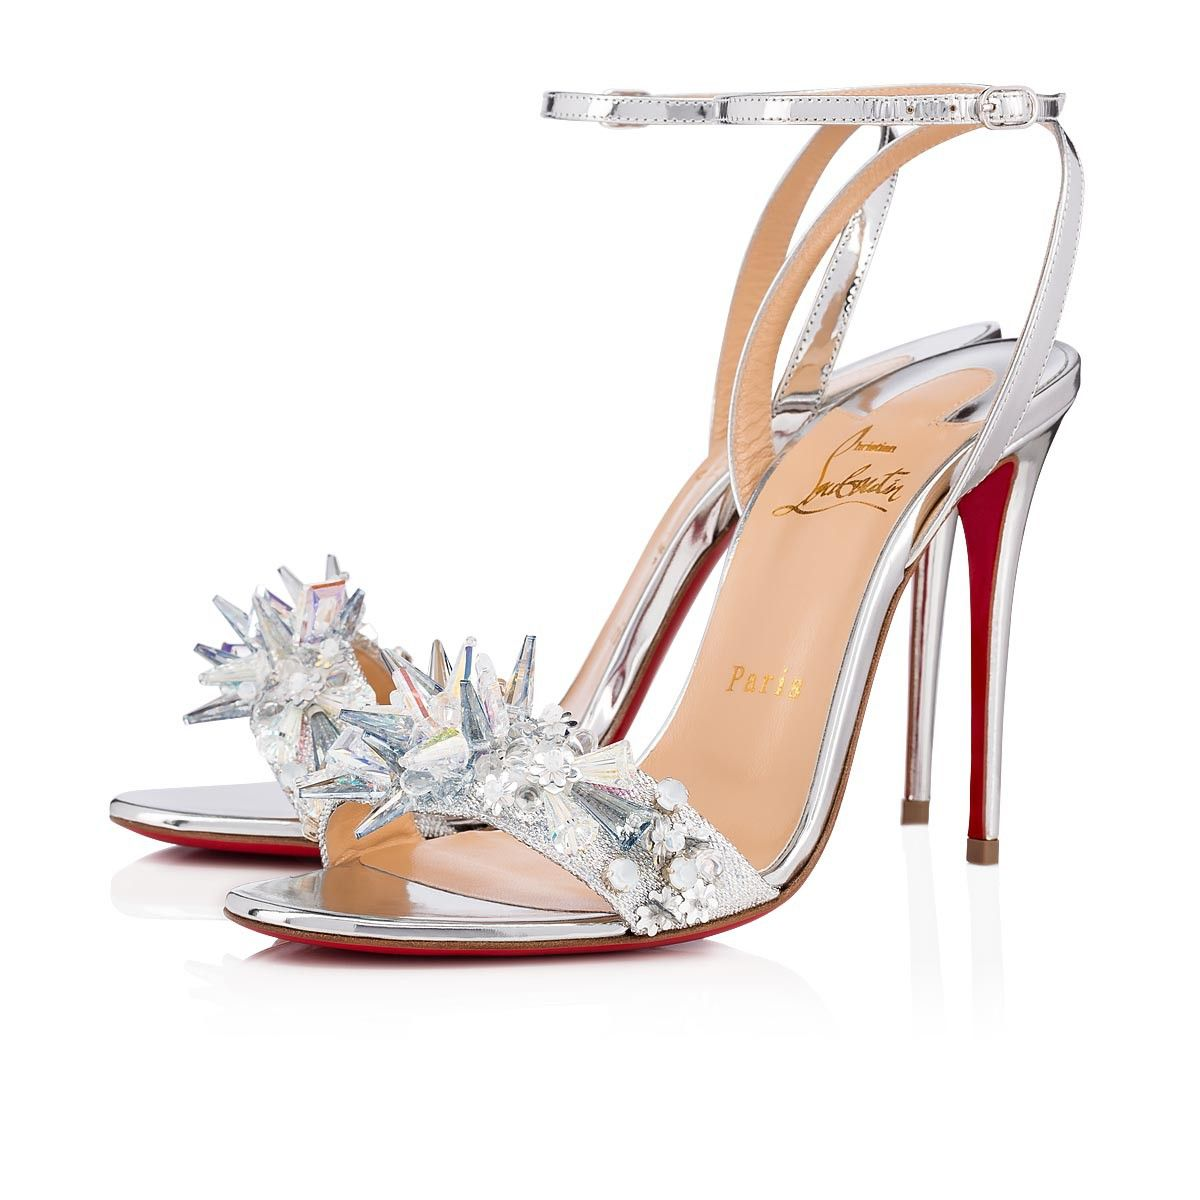 ce04d1c6f Christian Louboutin United States Official Online Boutique - Okydok 100  Version Silver Crepe Satin Satin Lurex available online. Discover more  Women Shoes ...